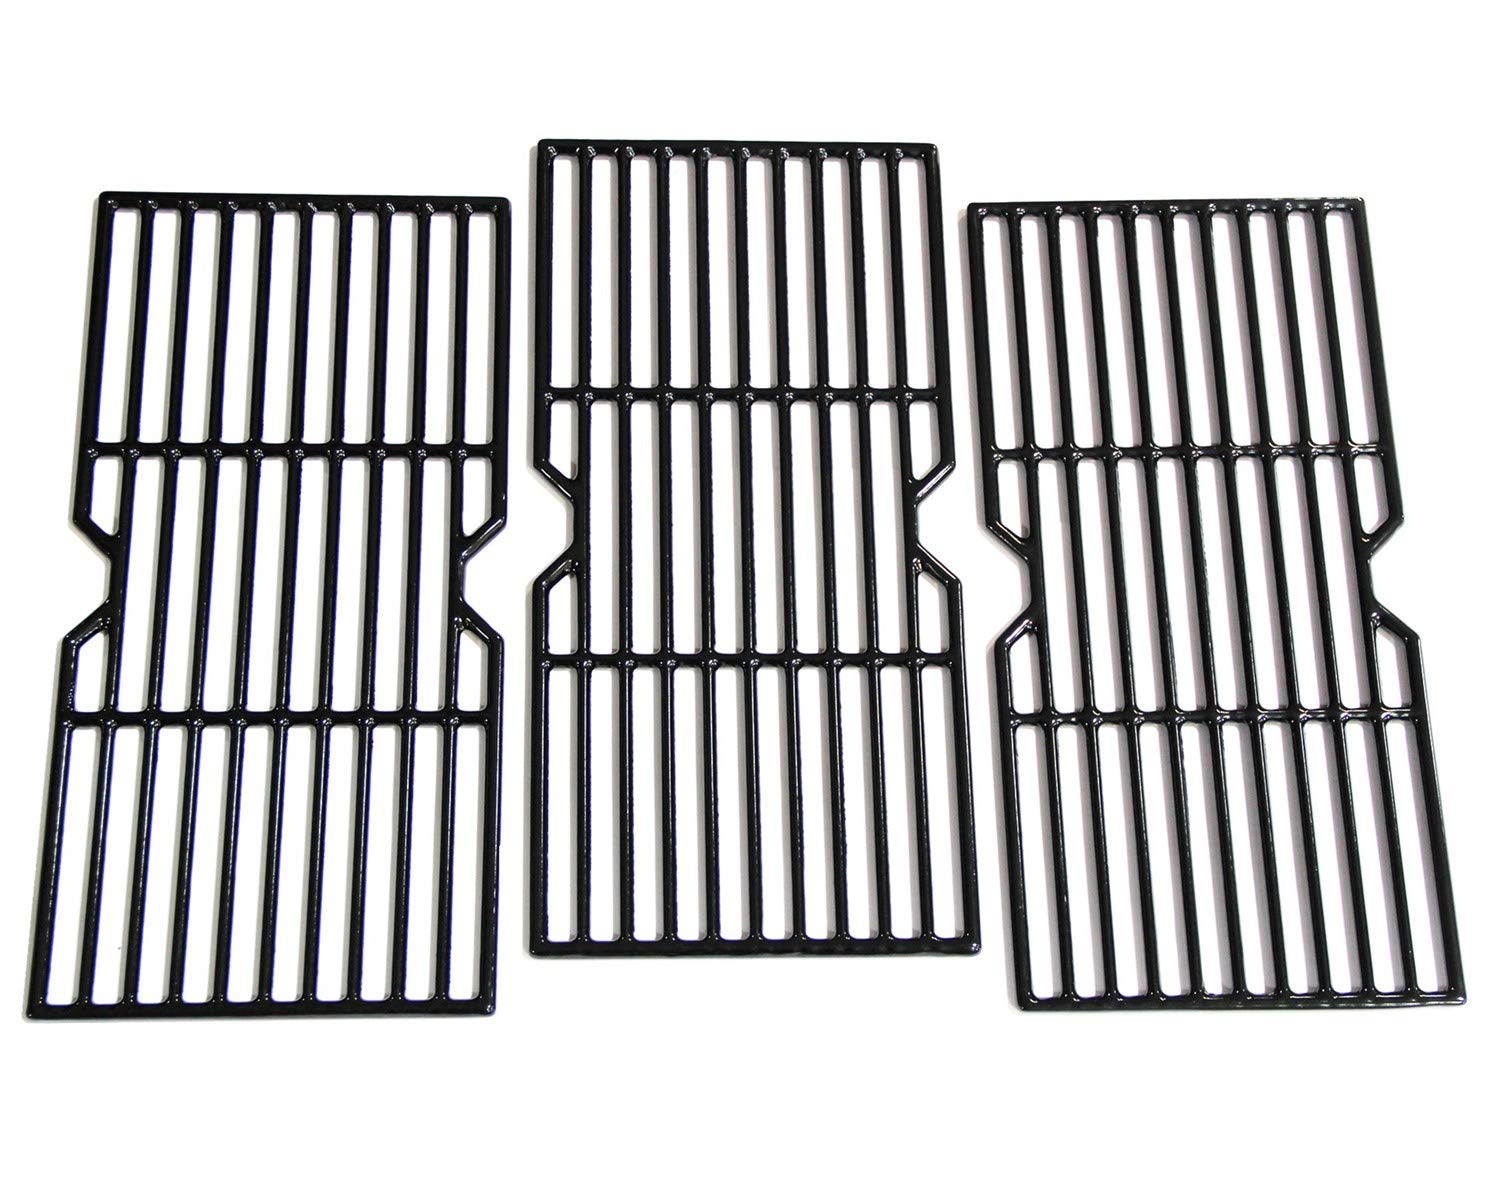 Hongso PCF123 Porcelain Coated Cast Iron Cooking Grid Grates Replacement for Charbroil Advantage 463343015, 463344015, 463344116, Kenmore, Broil King Gas Grill Models, G467-0002-W1, 16 15/16'', 3-Pack by Hongso